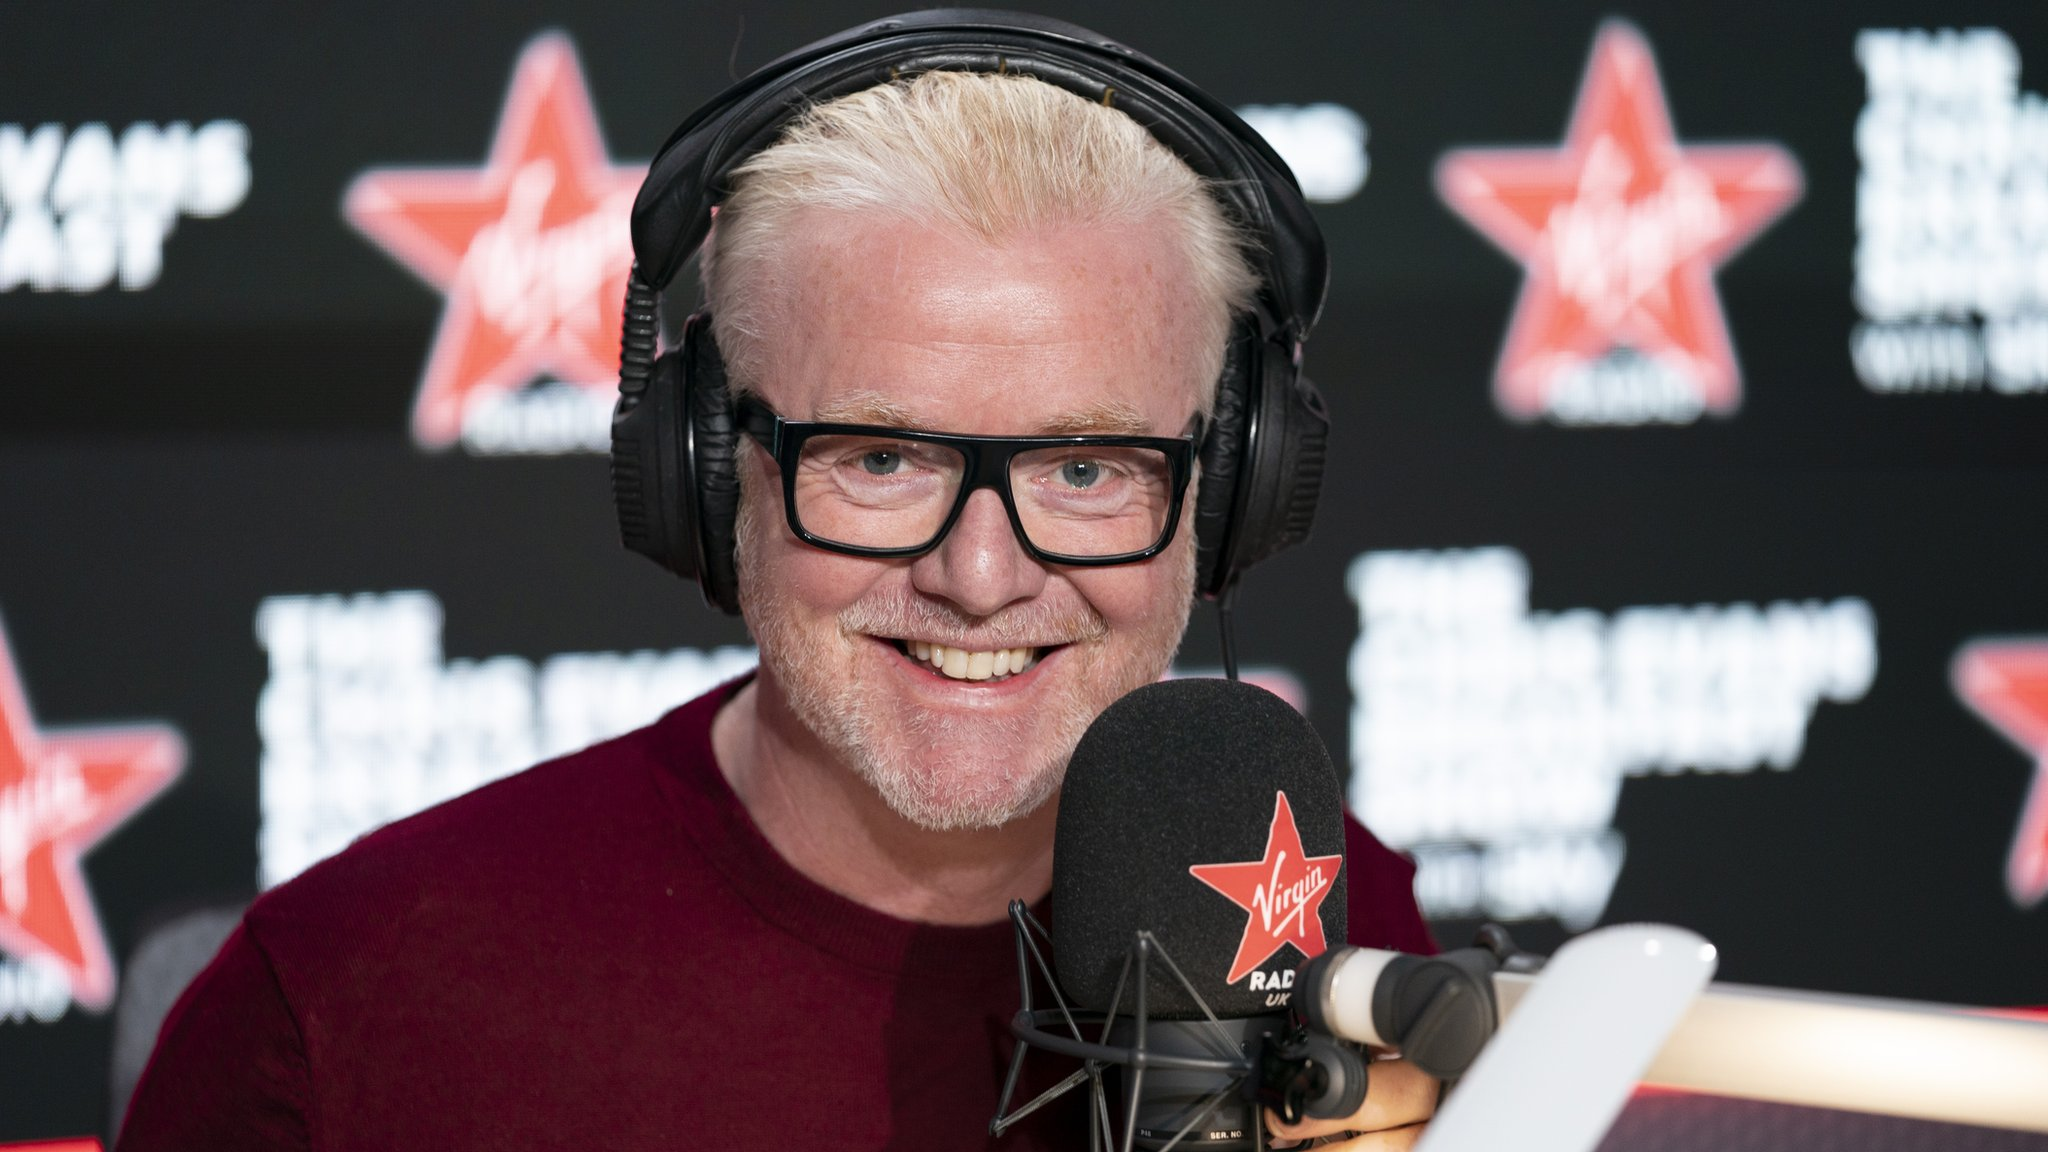 Chris Evans launches new Virgin Radio breakfast show